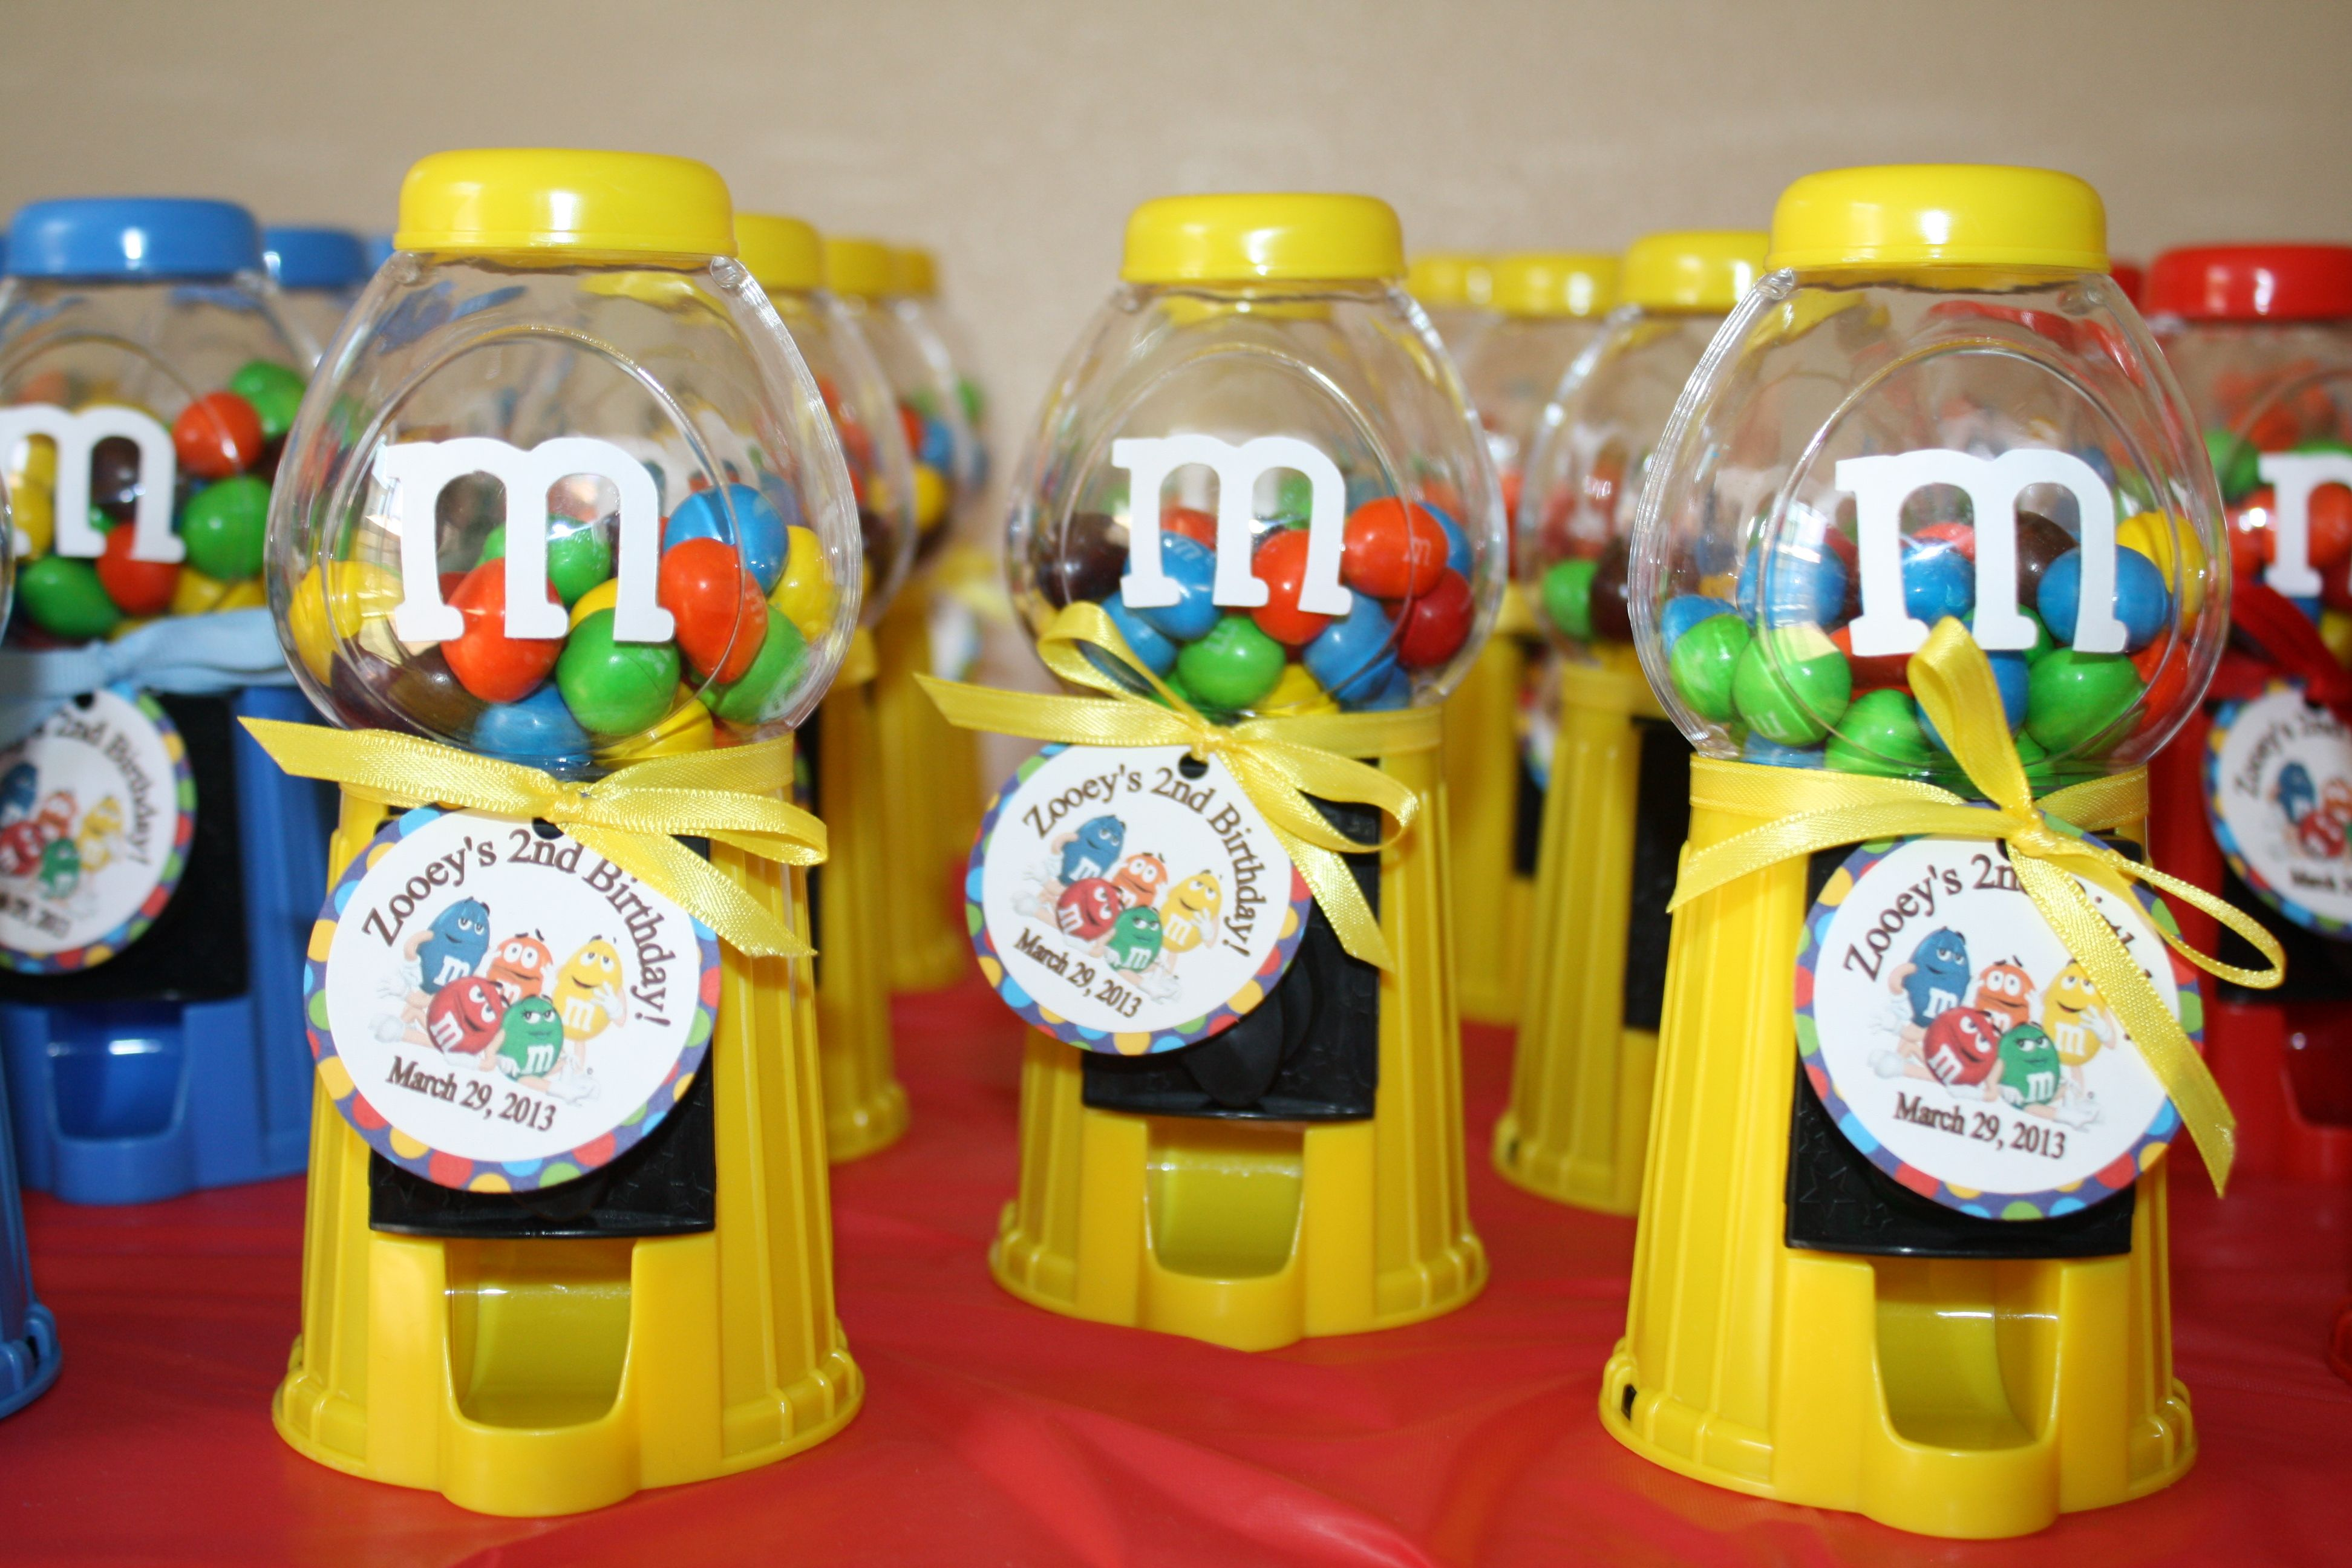 Pin By Mrs Del Toro On My Creations Birthday Party Favors 1st Birthday Party Favors 1st Birthday Parties